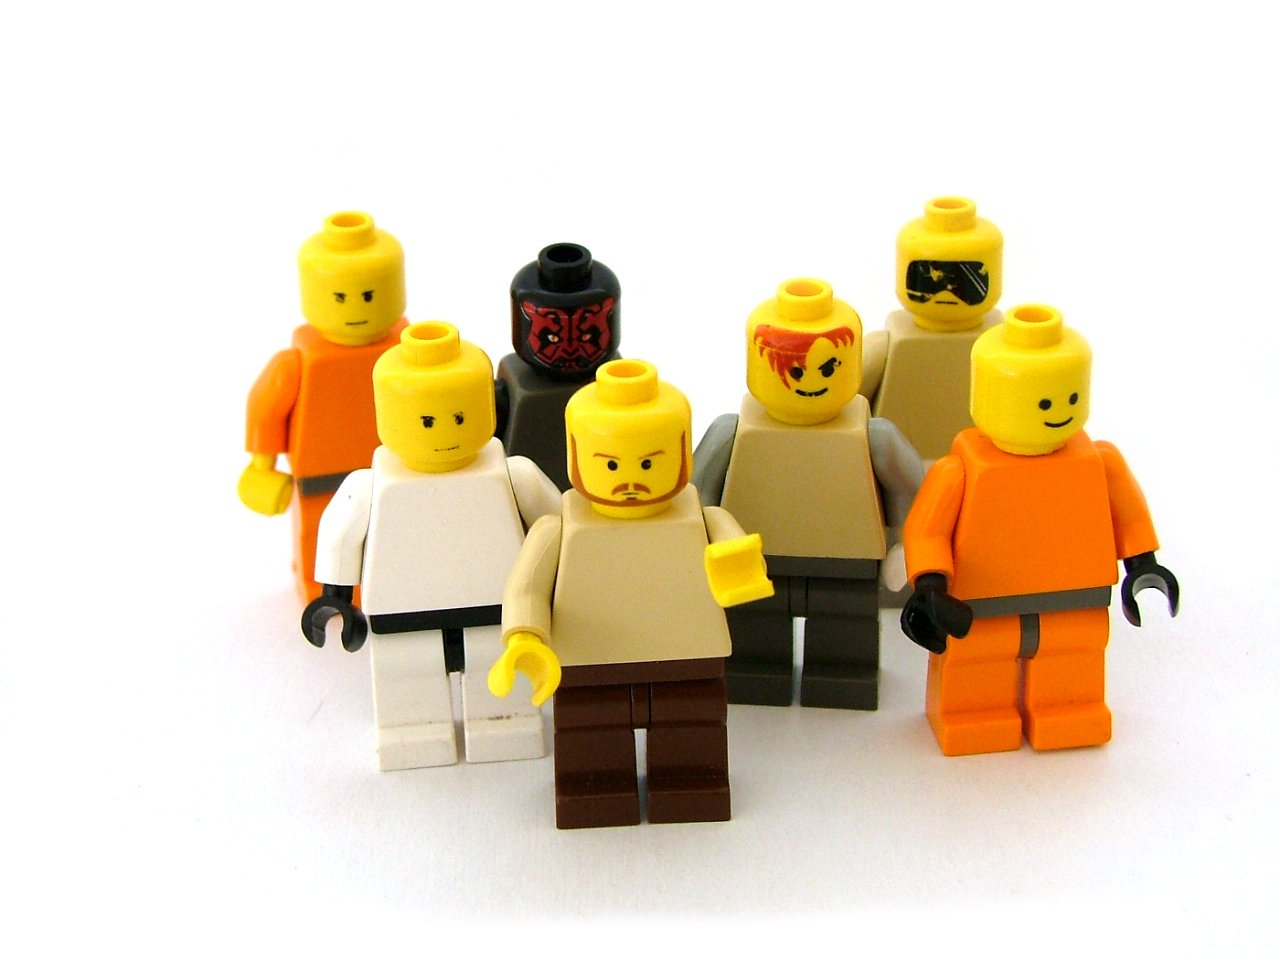 Lego's people group